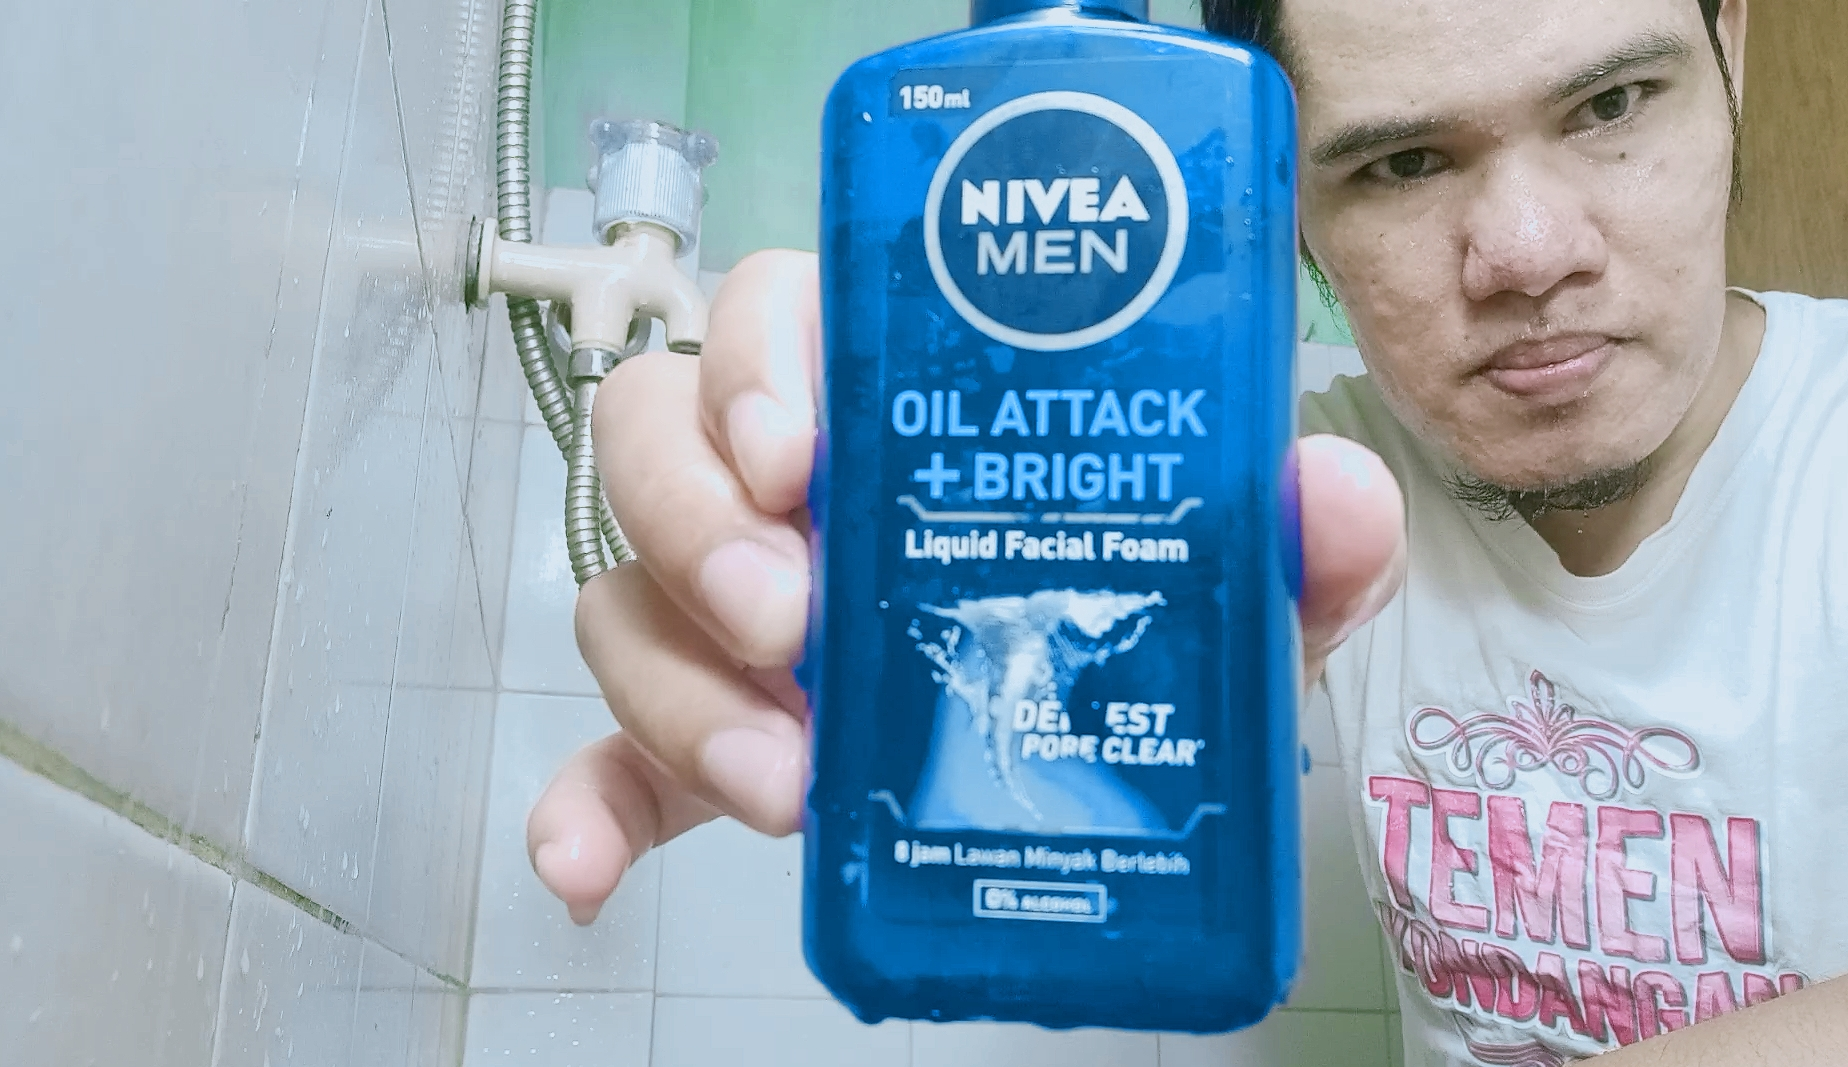 NIVEA MEN Facial Foam